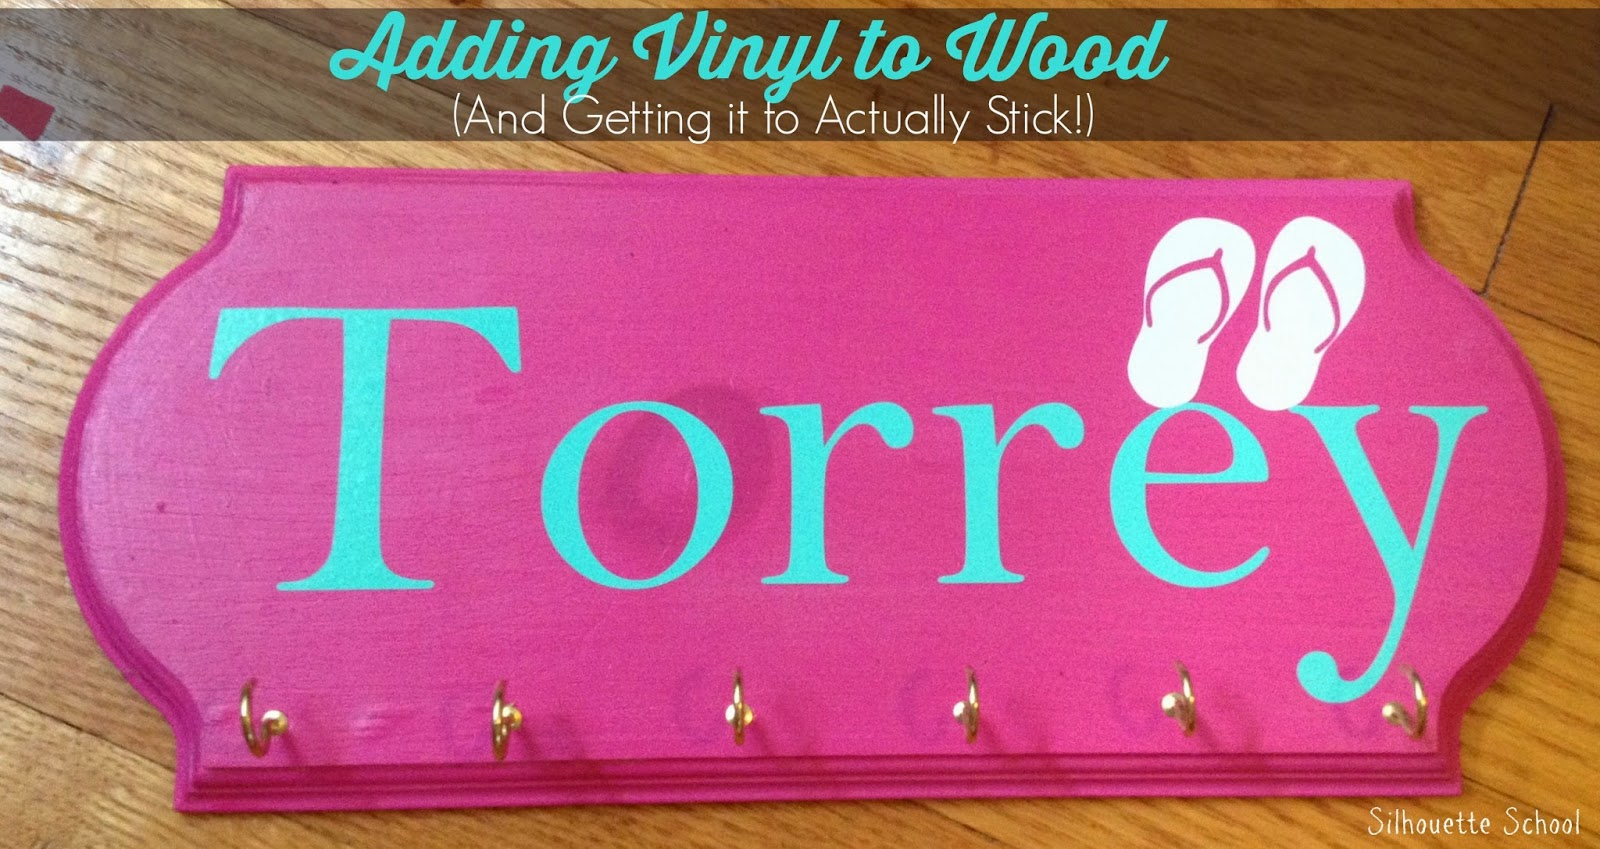 How To Put Vinyl On Painted Wood Signs So It Actually Sticks - How to make vinyl decals stick to wood